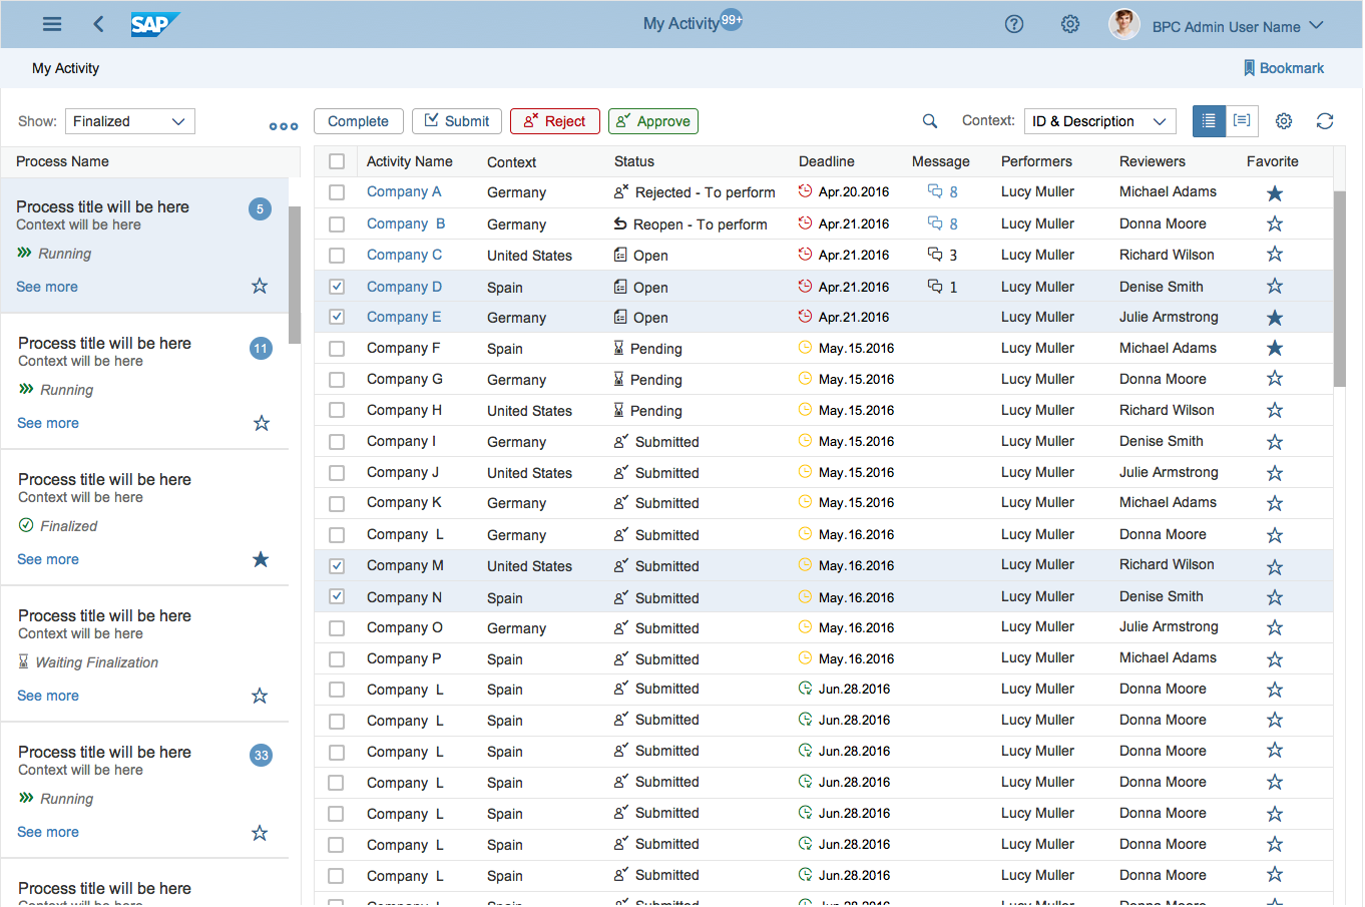 SAP Business Planning and Consolidation (BPC) Demo - BPC_AdminMonitor.png